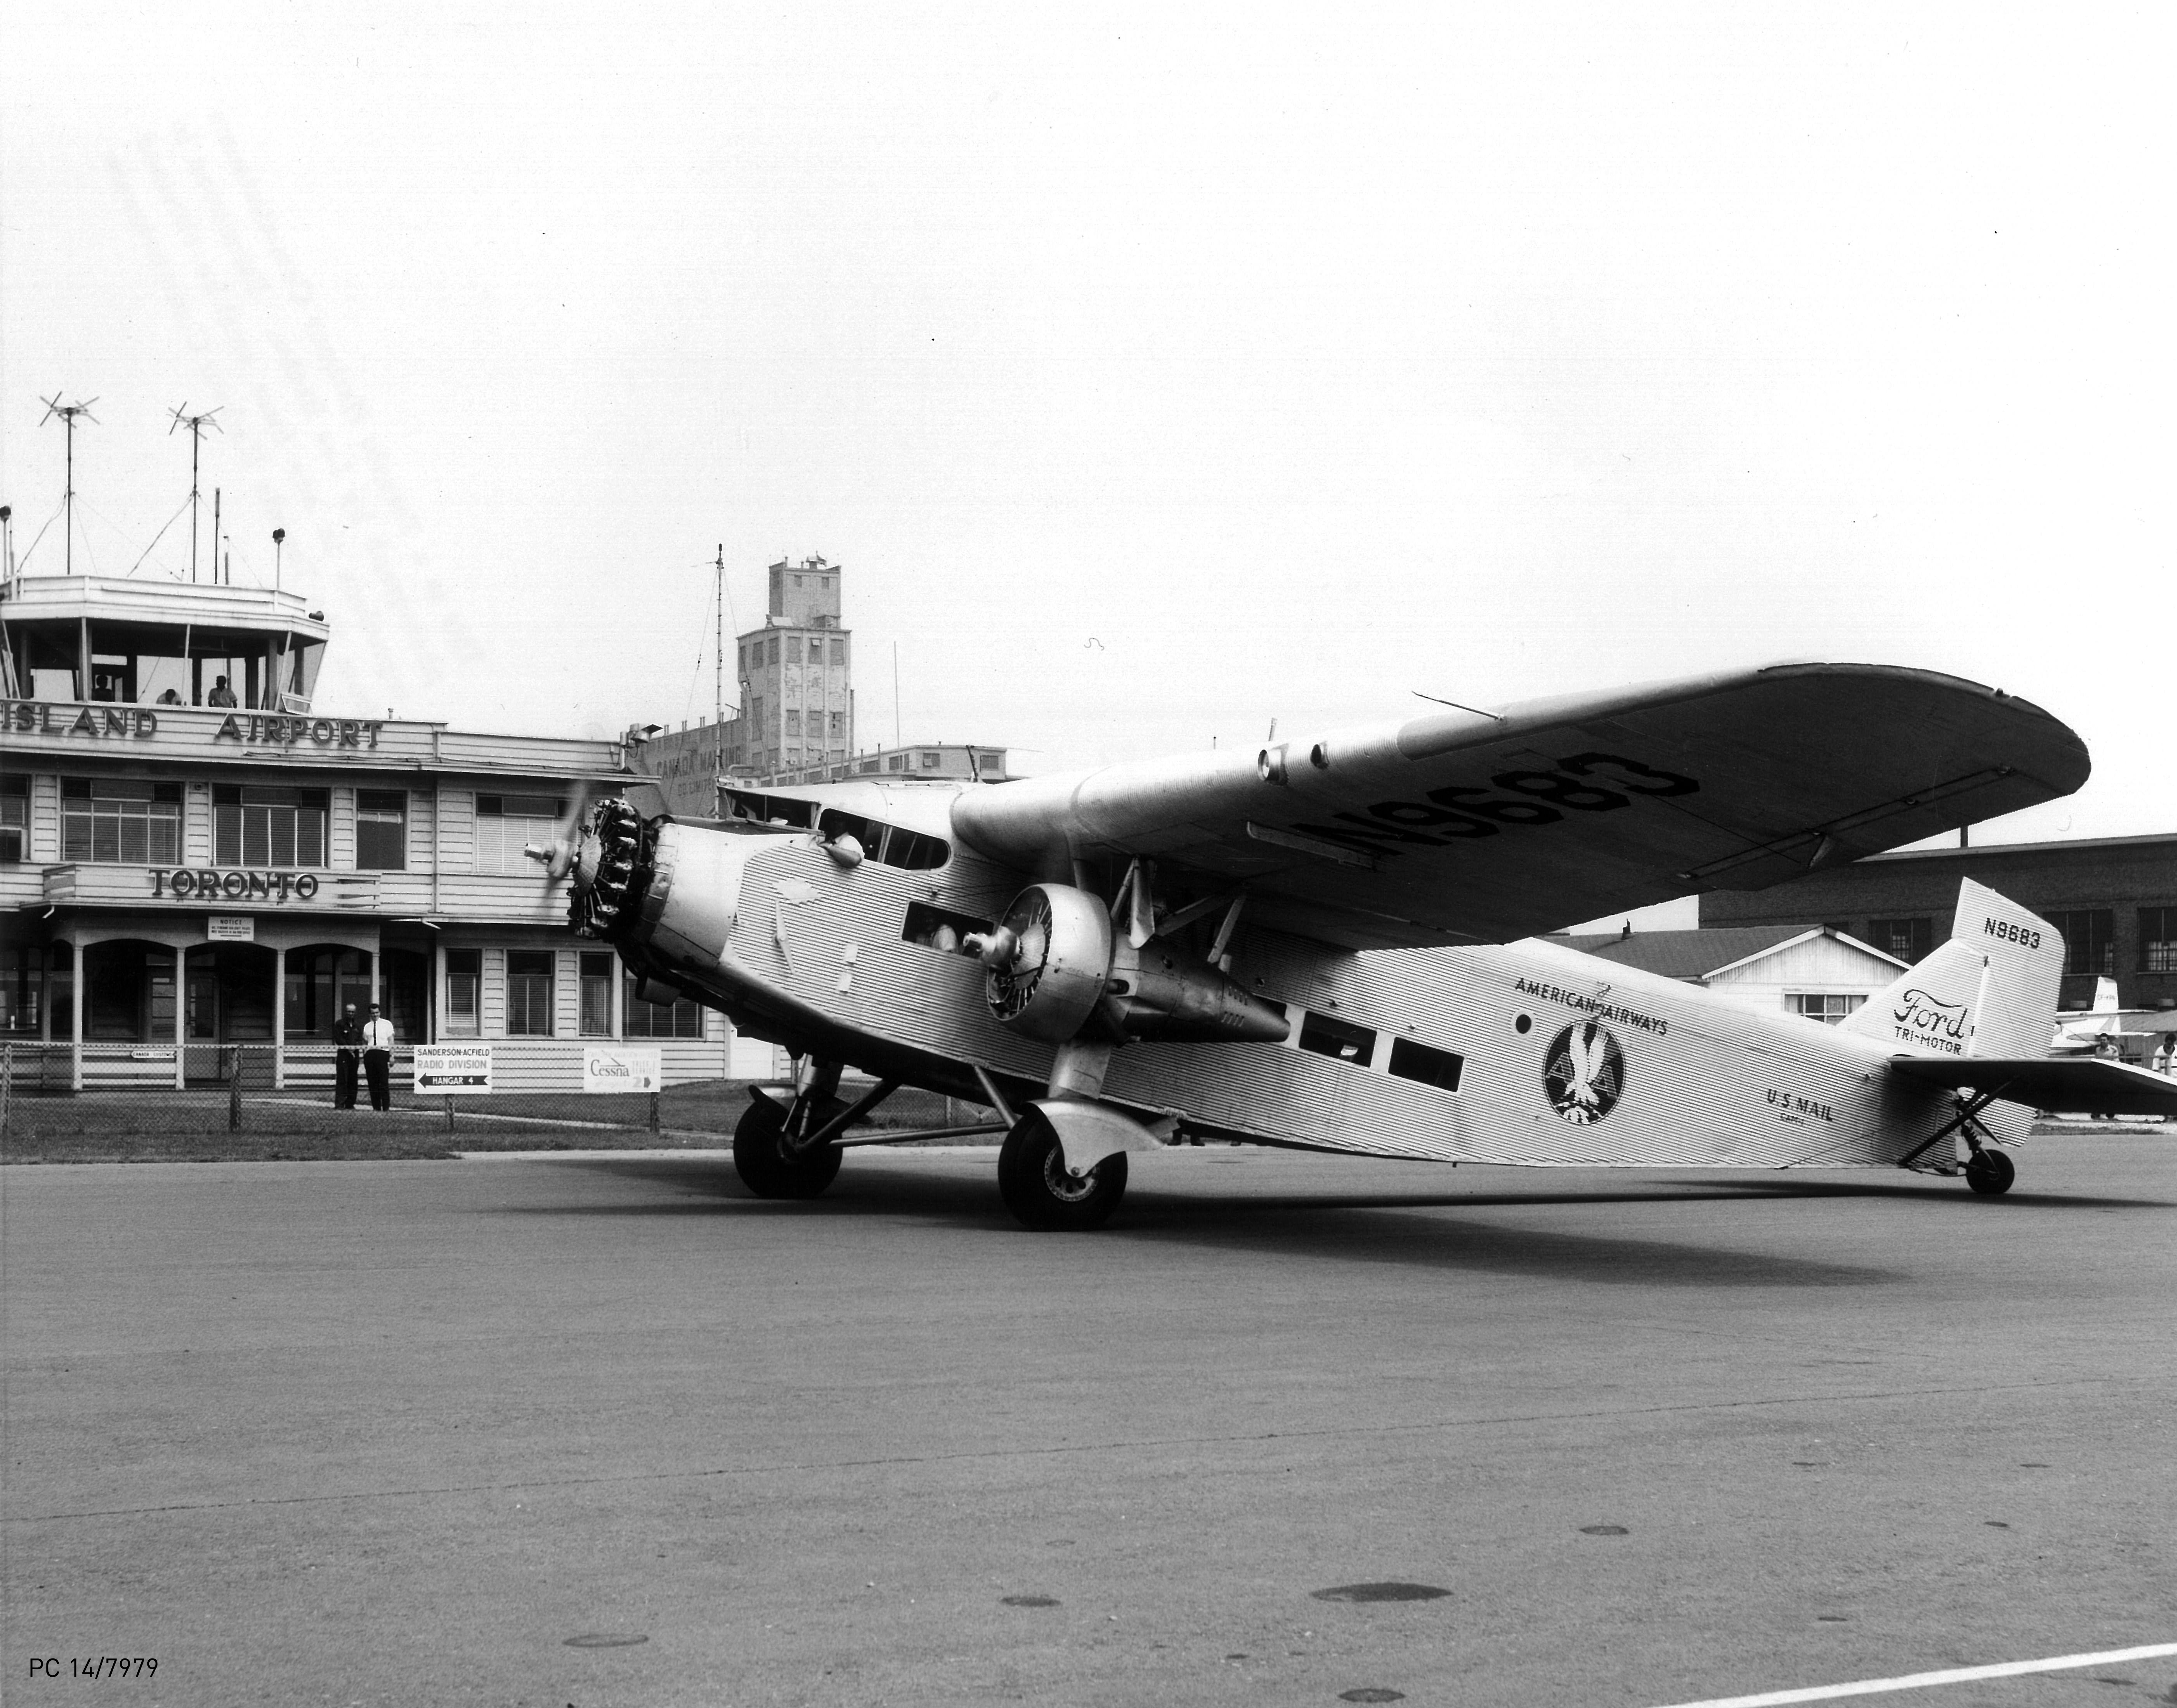 July 1, 1964: American Airways U.S. Mail Plane-Vintage Ford Tri-motor warms up its engines in front of the Island Airport Terminal Building (Terminal A). This particular aircraft was built in 1929, and is now preserved as a static (non-flying) display in the Smithsonian Air and Space Institute in Washington, D.C. HANDOUT/Toronto Port Authority